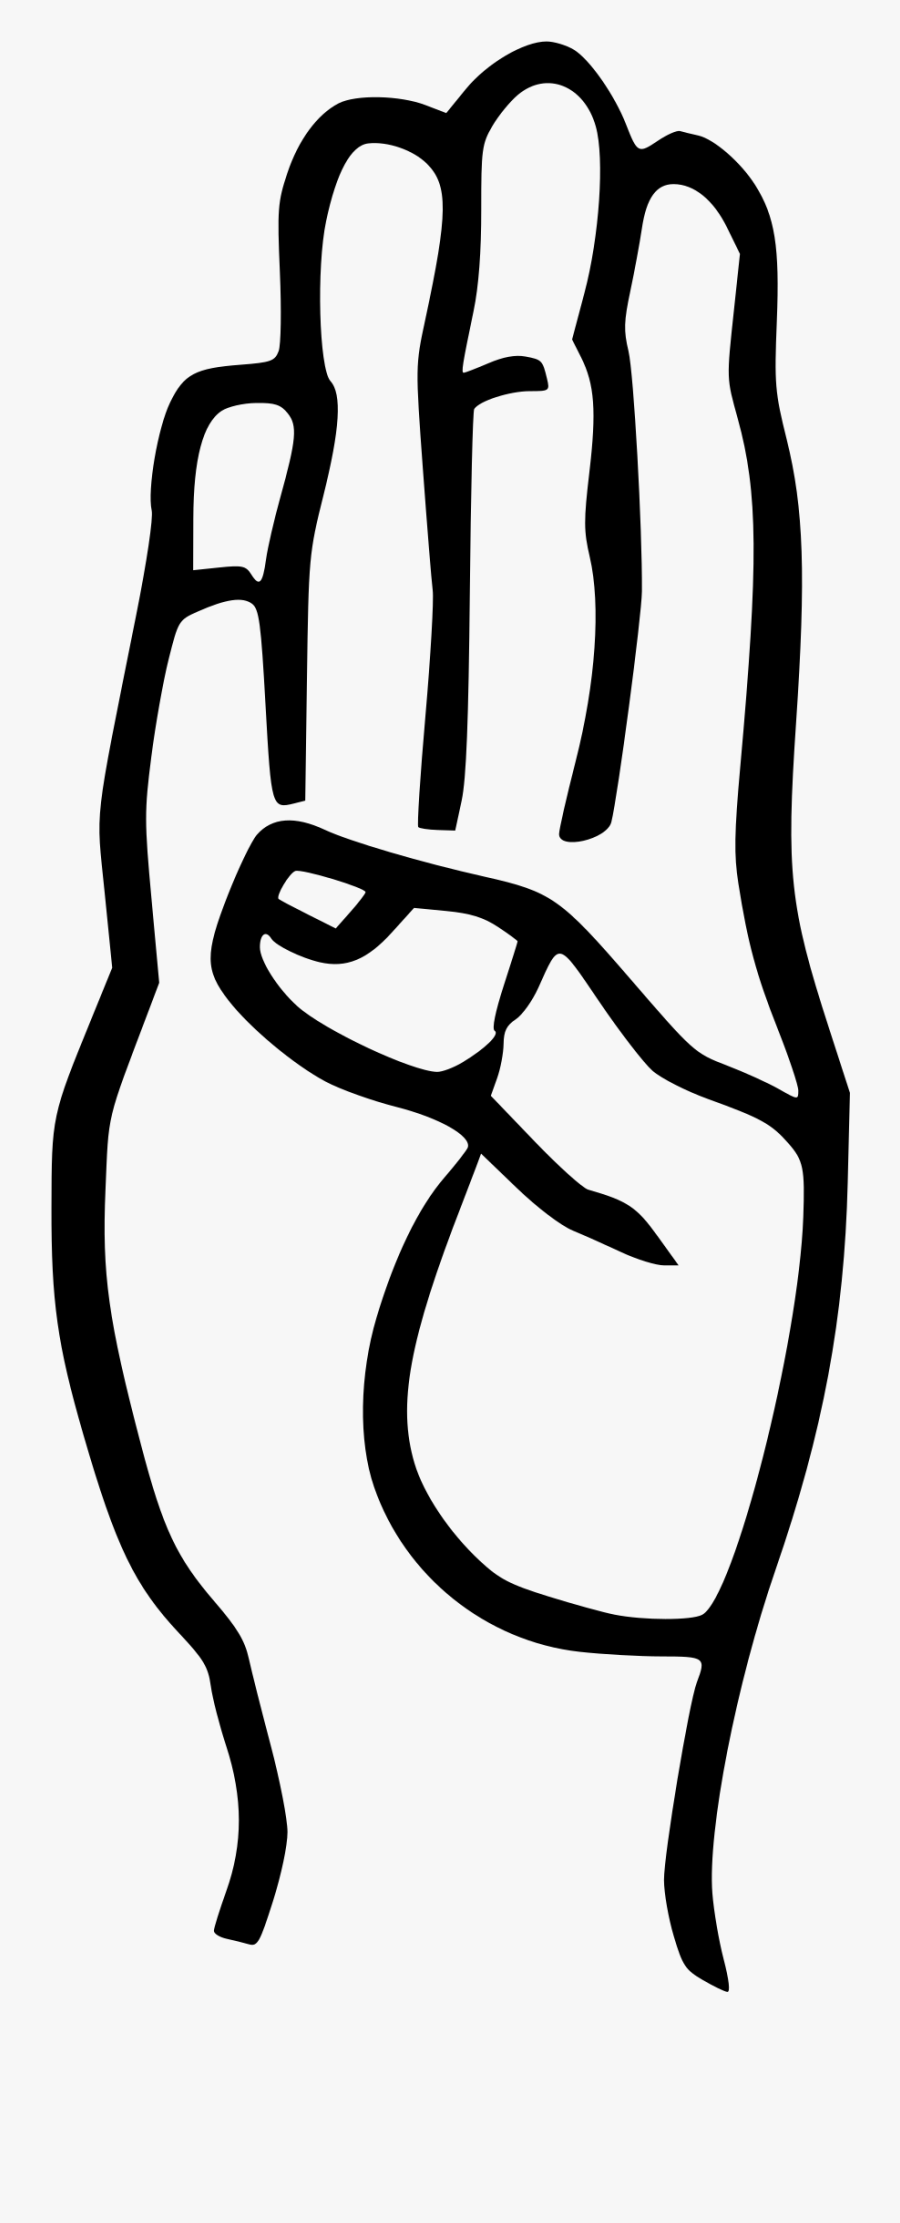 Clip Art Letter B In Sign Language - Sign Language Individual Letters, Transparent Clipart